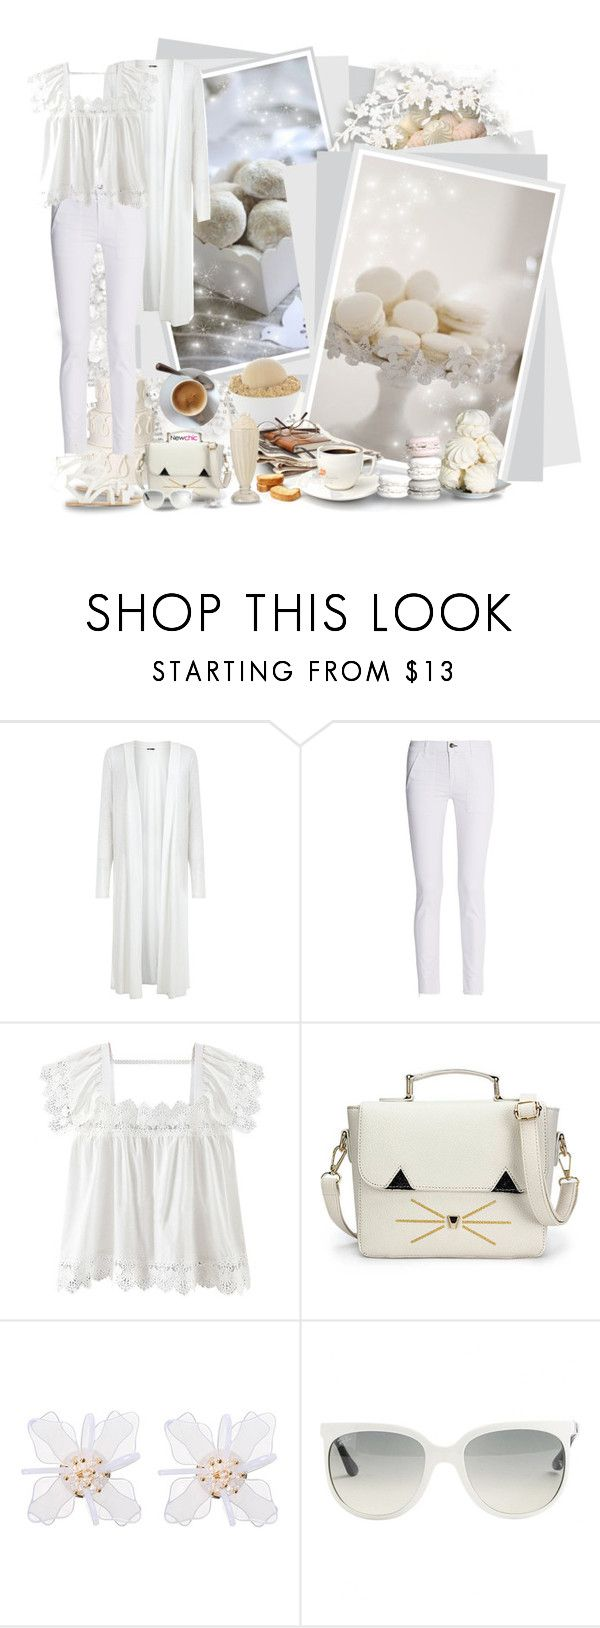 """Newchic"" by asia-12 ❤ liked on Polyvore featuring rag & bone, Ray-Ban and newchic"